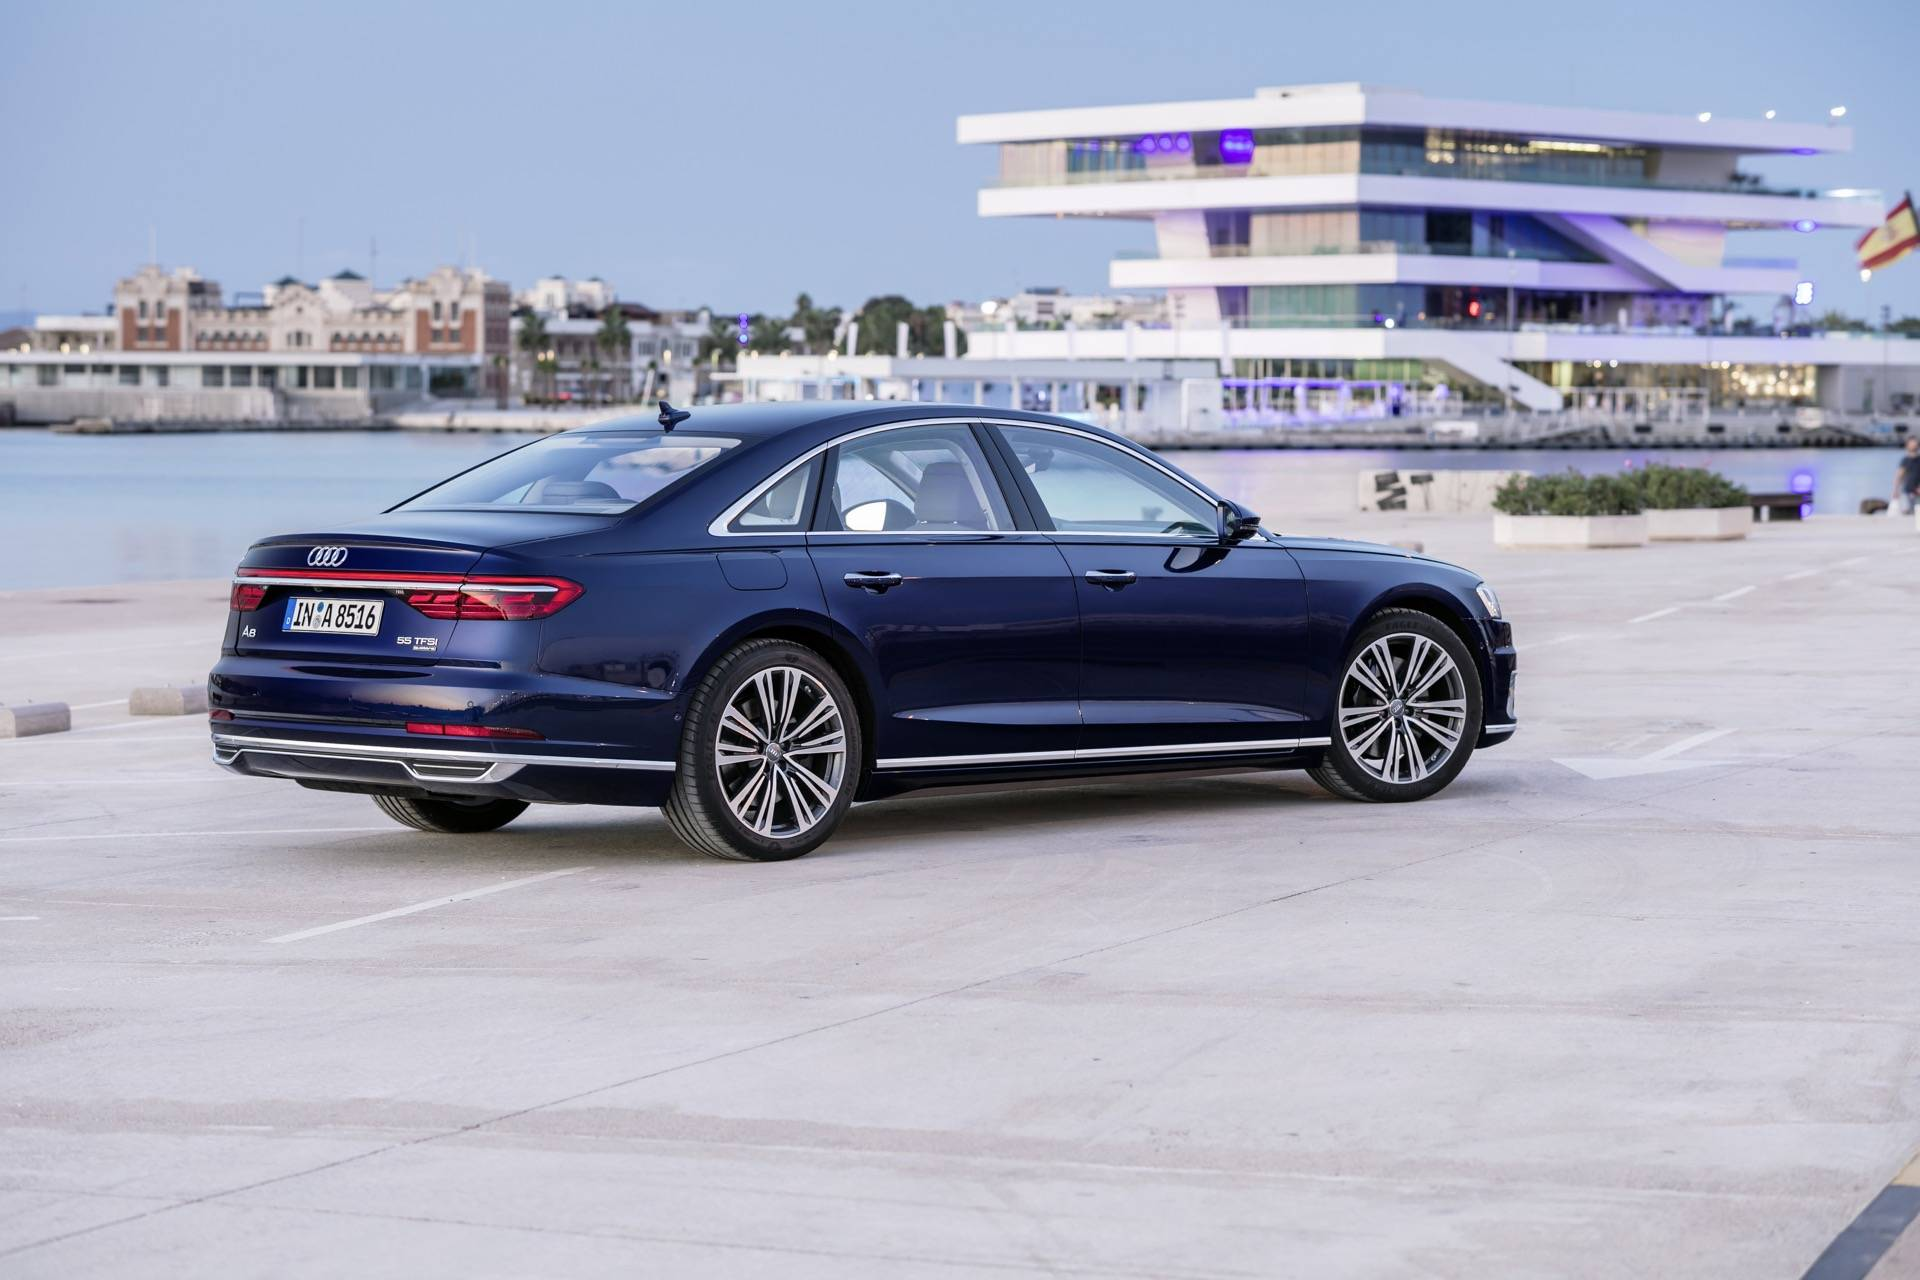 2018 audi a8.  audi 2018 audi a8 1 of 28 the  intended audi a8 n